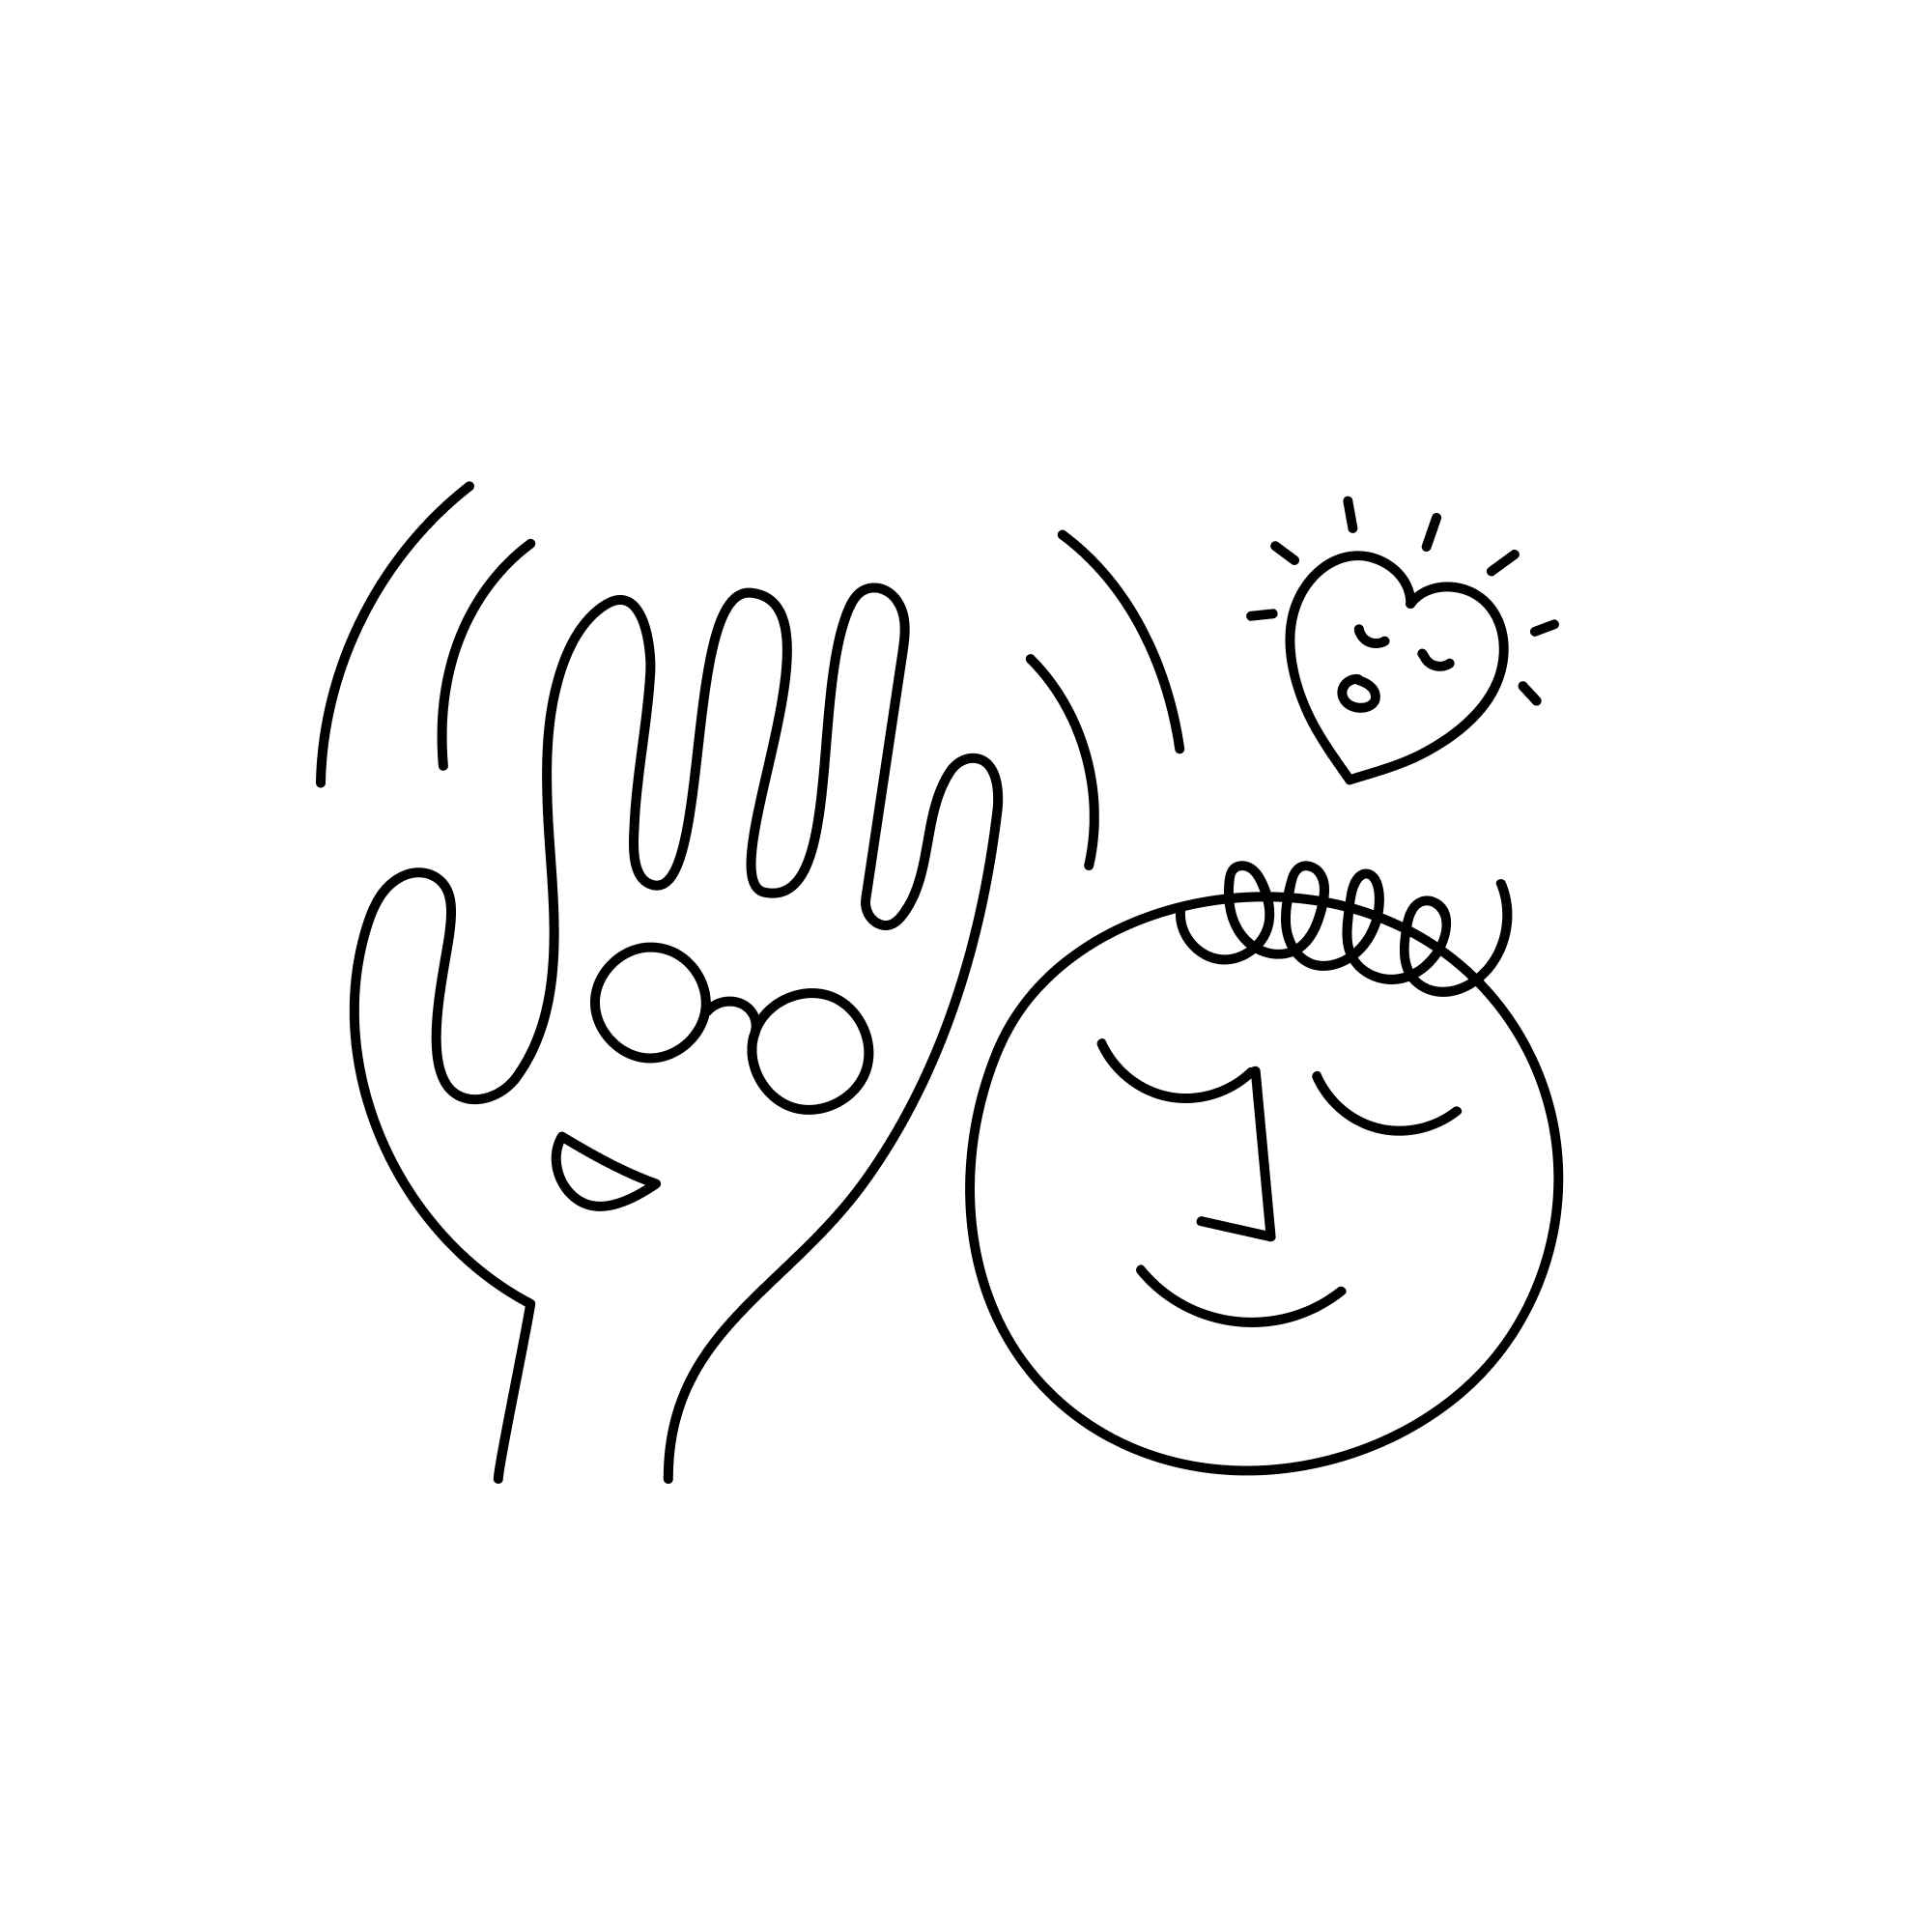 Friendly waving hand wearing glasses, next to a friend finding peace with a heart floating above.